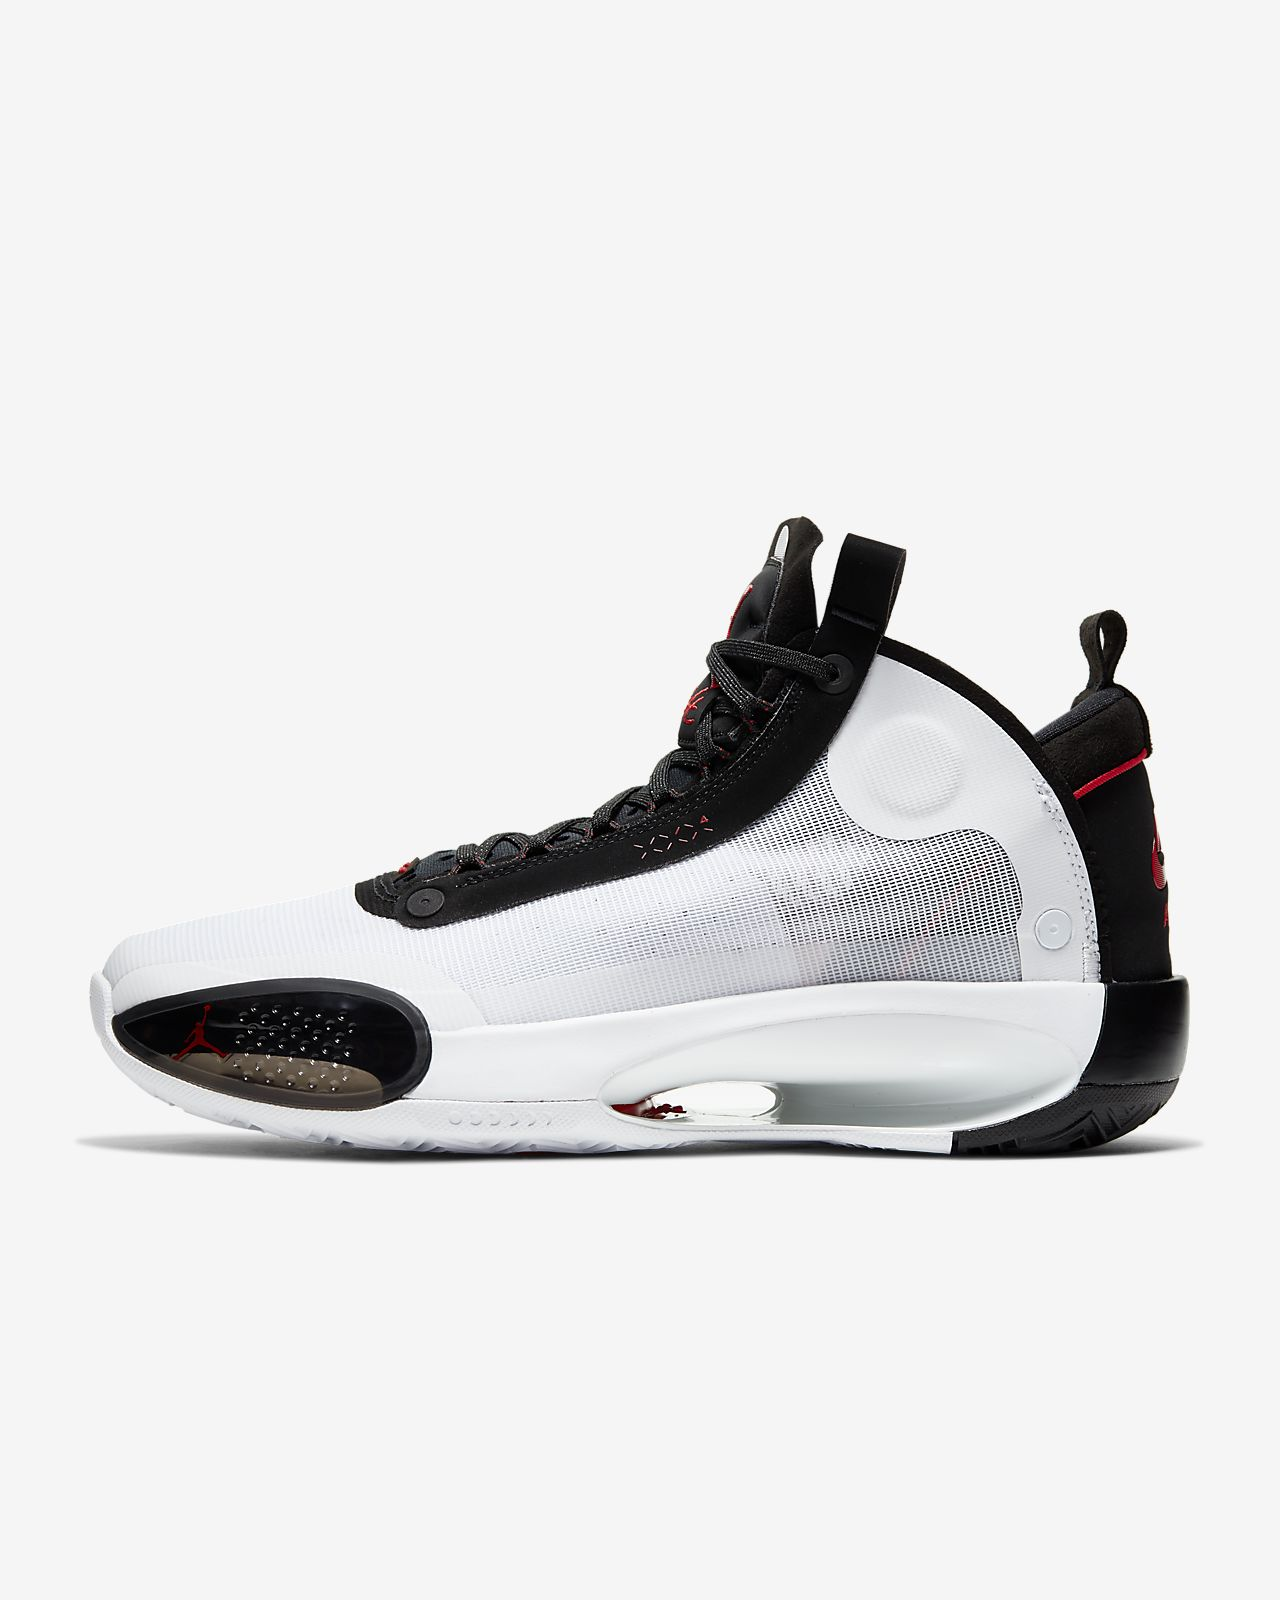 Air Jordan XXXIV Basketball Shoe